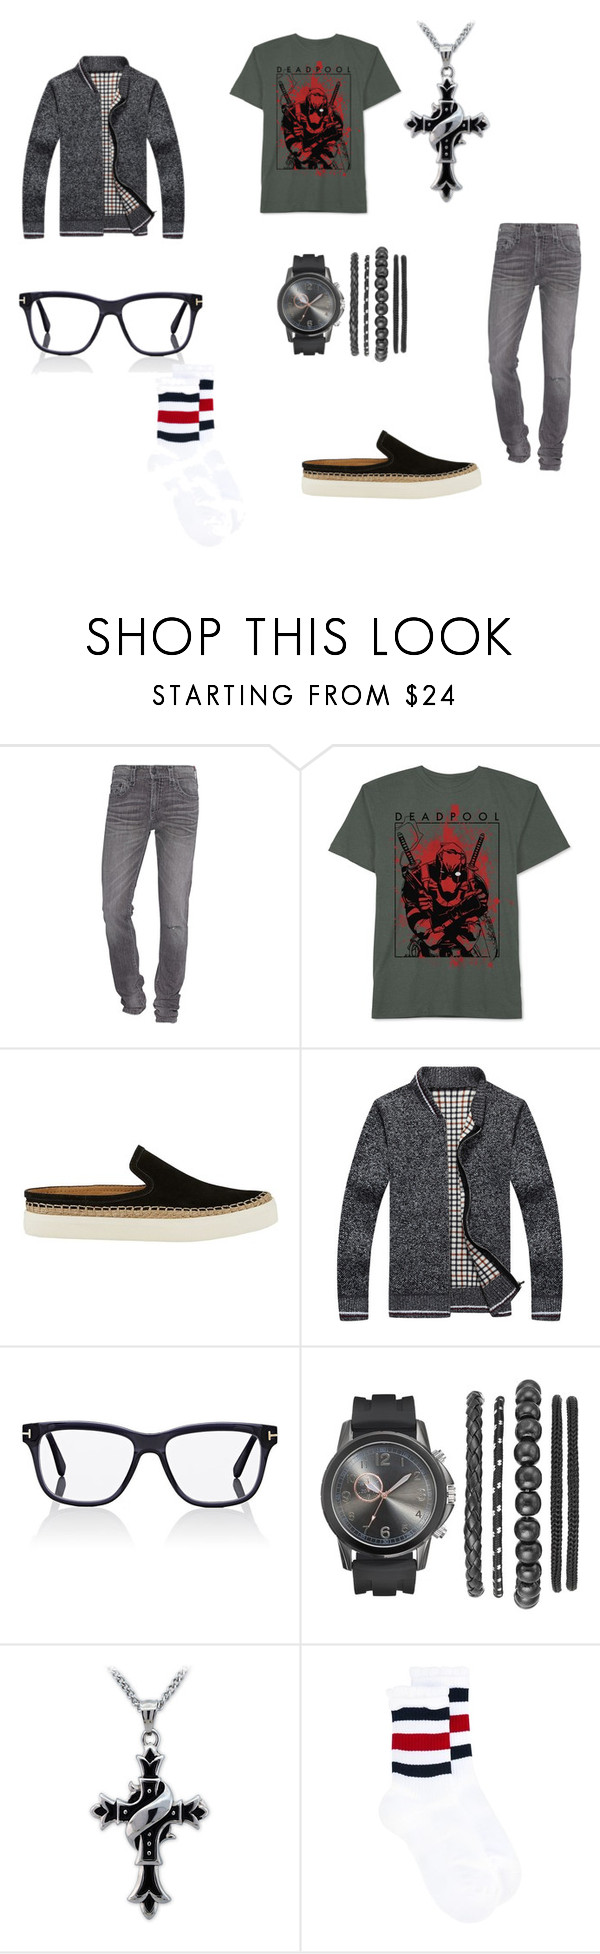 """""""b r e a t h e"""" by juno009 ❤ liked on Polyvore featuring True Religion, JEM, G.H. Bass & Co., Tom Ford, Gucci, men's fashion and menswear"""